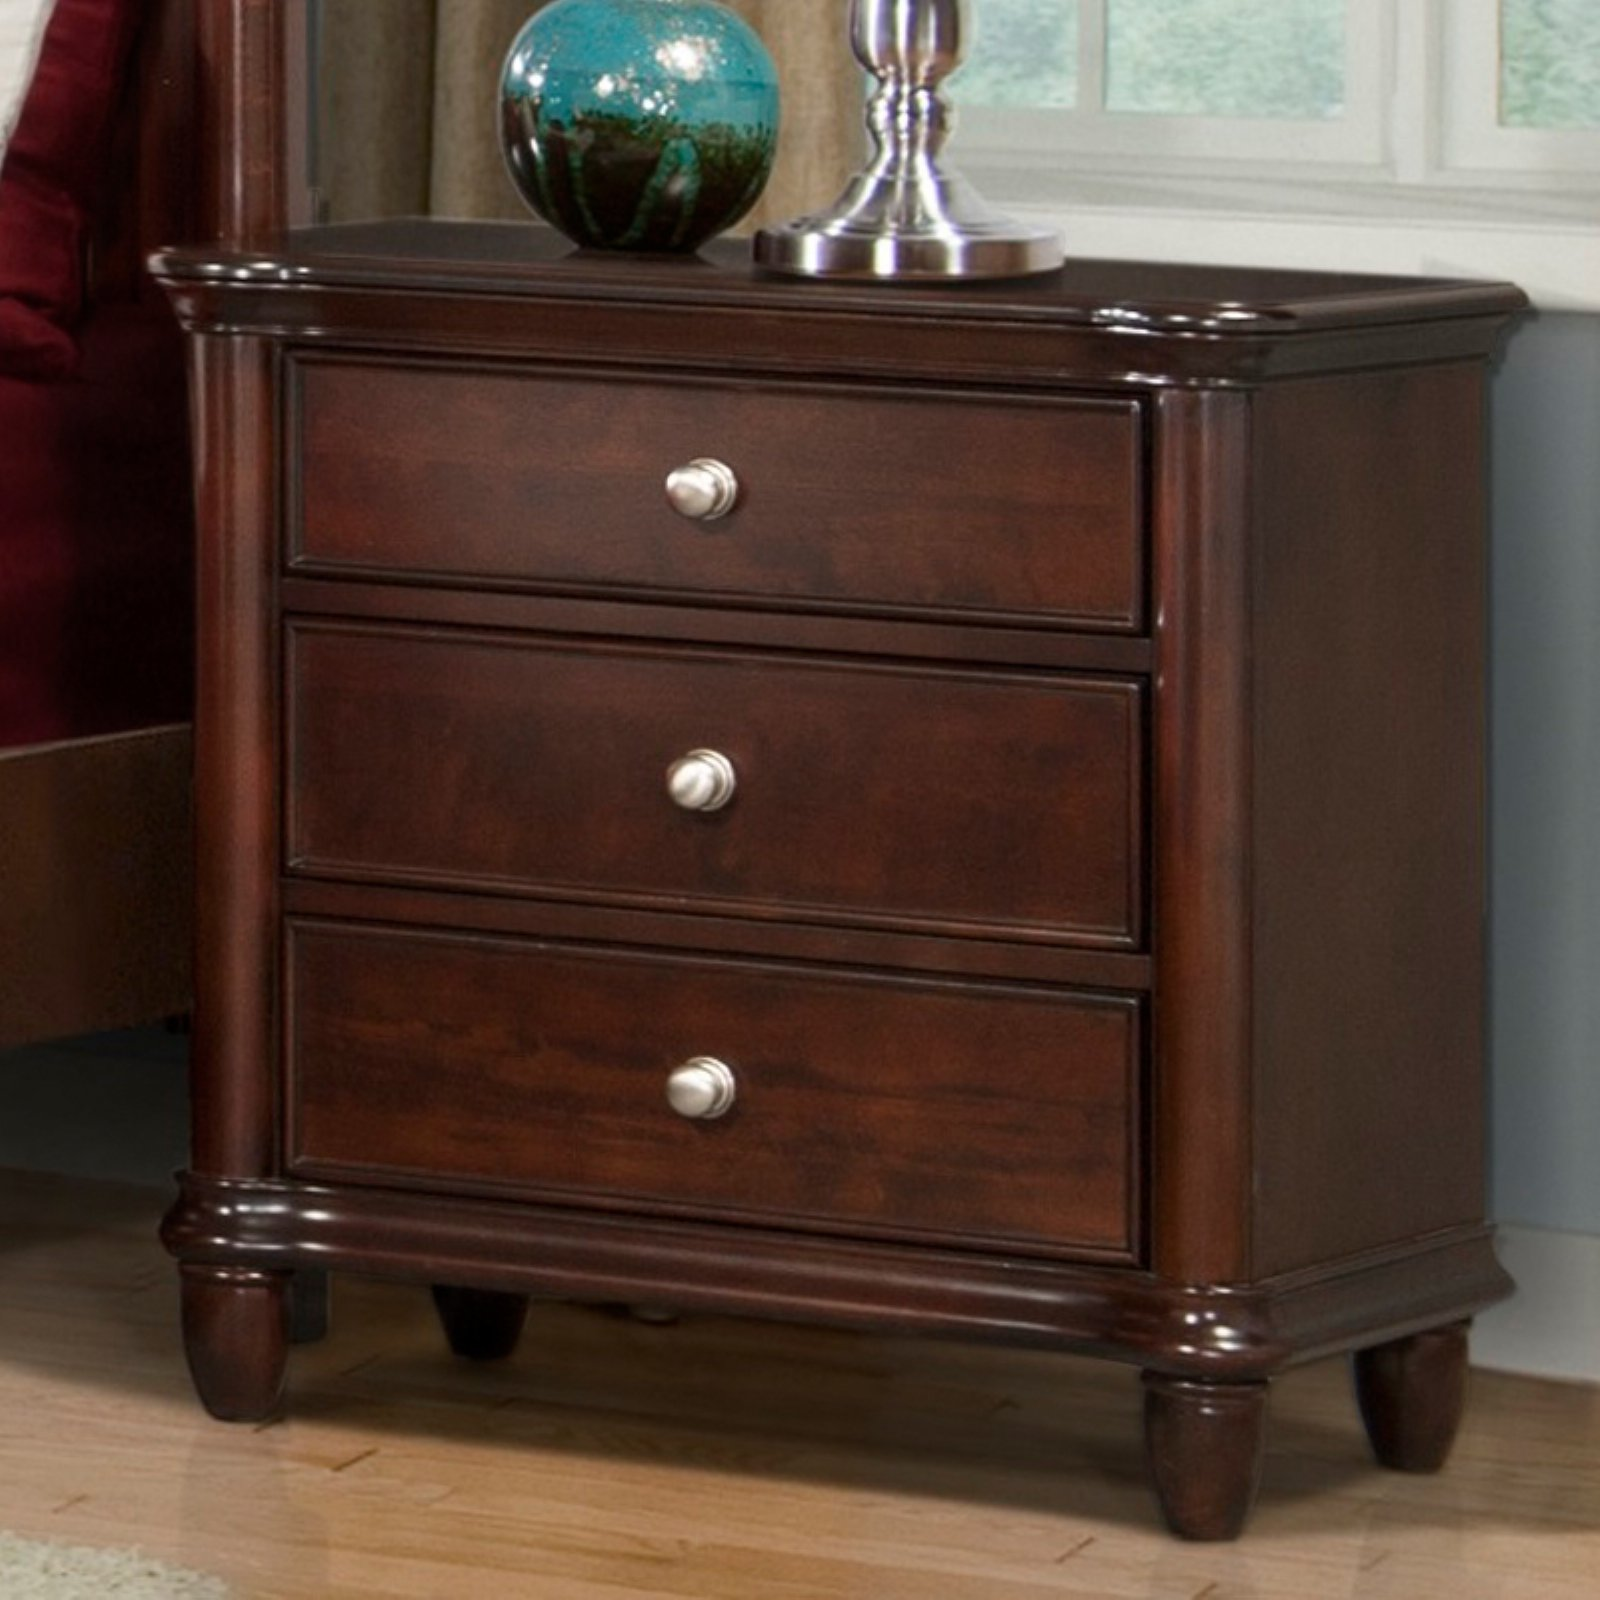 Picket House Furnishings Hamilton 3 Drawer Nightstand - Warm Brown Cherry